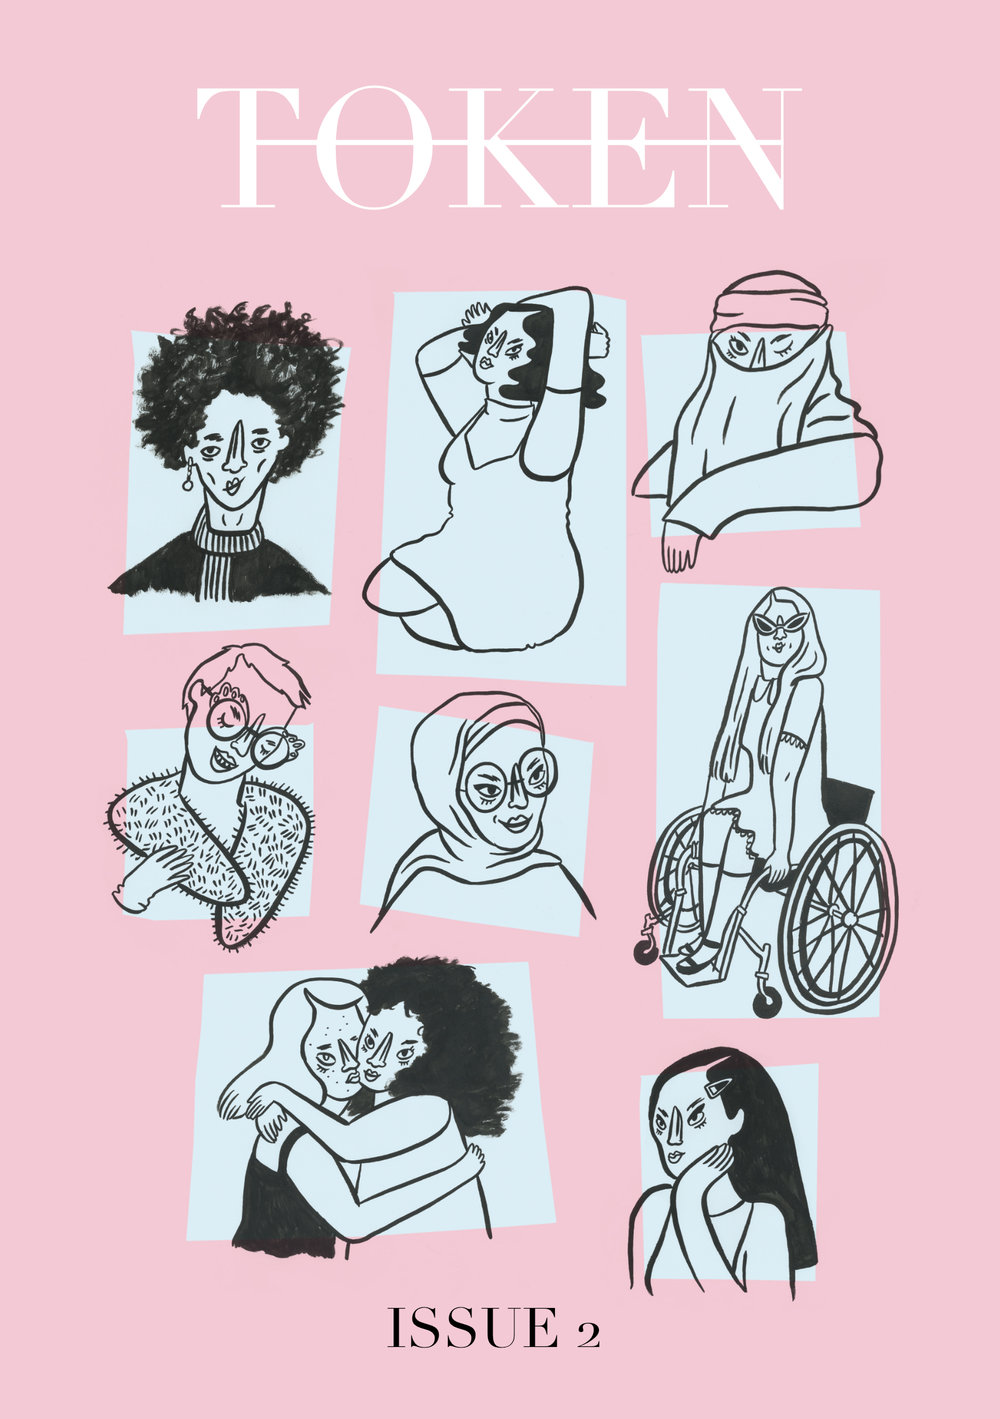 Issue 2 - Cover illustrations by Clio Isadora.TOKEN Magazine's second issue features short stories, life writing, poetry and artwork on the theme 'bodies' from Efemia Chela, Louisa Adoja Parker, Nicholas Hayden, Melissa Legarda Alcantara, Marianne Tatepo, Sara Jafari, Bethany Rose Lamont, Clio Isadora, Presley Nassise, Thalia Ostendorf, Hogarth Brown, Nicola Webb, Sara Saleh, Christine Yahya, Shreeta Shah, Touran Soltanifard, Diana Branzan, Rowan Hisayo Buchanan, Brooklyn White, Neeki Chitsaz and Eiman Alubudy.Click here for the Editor's Note.